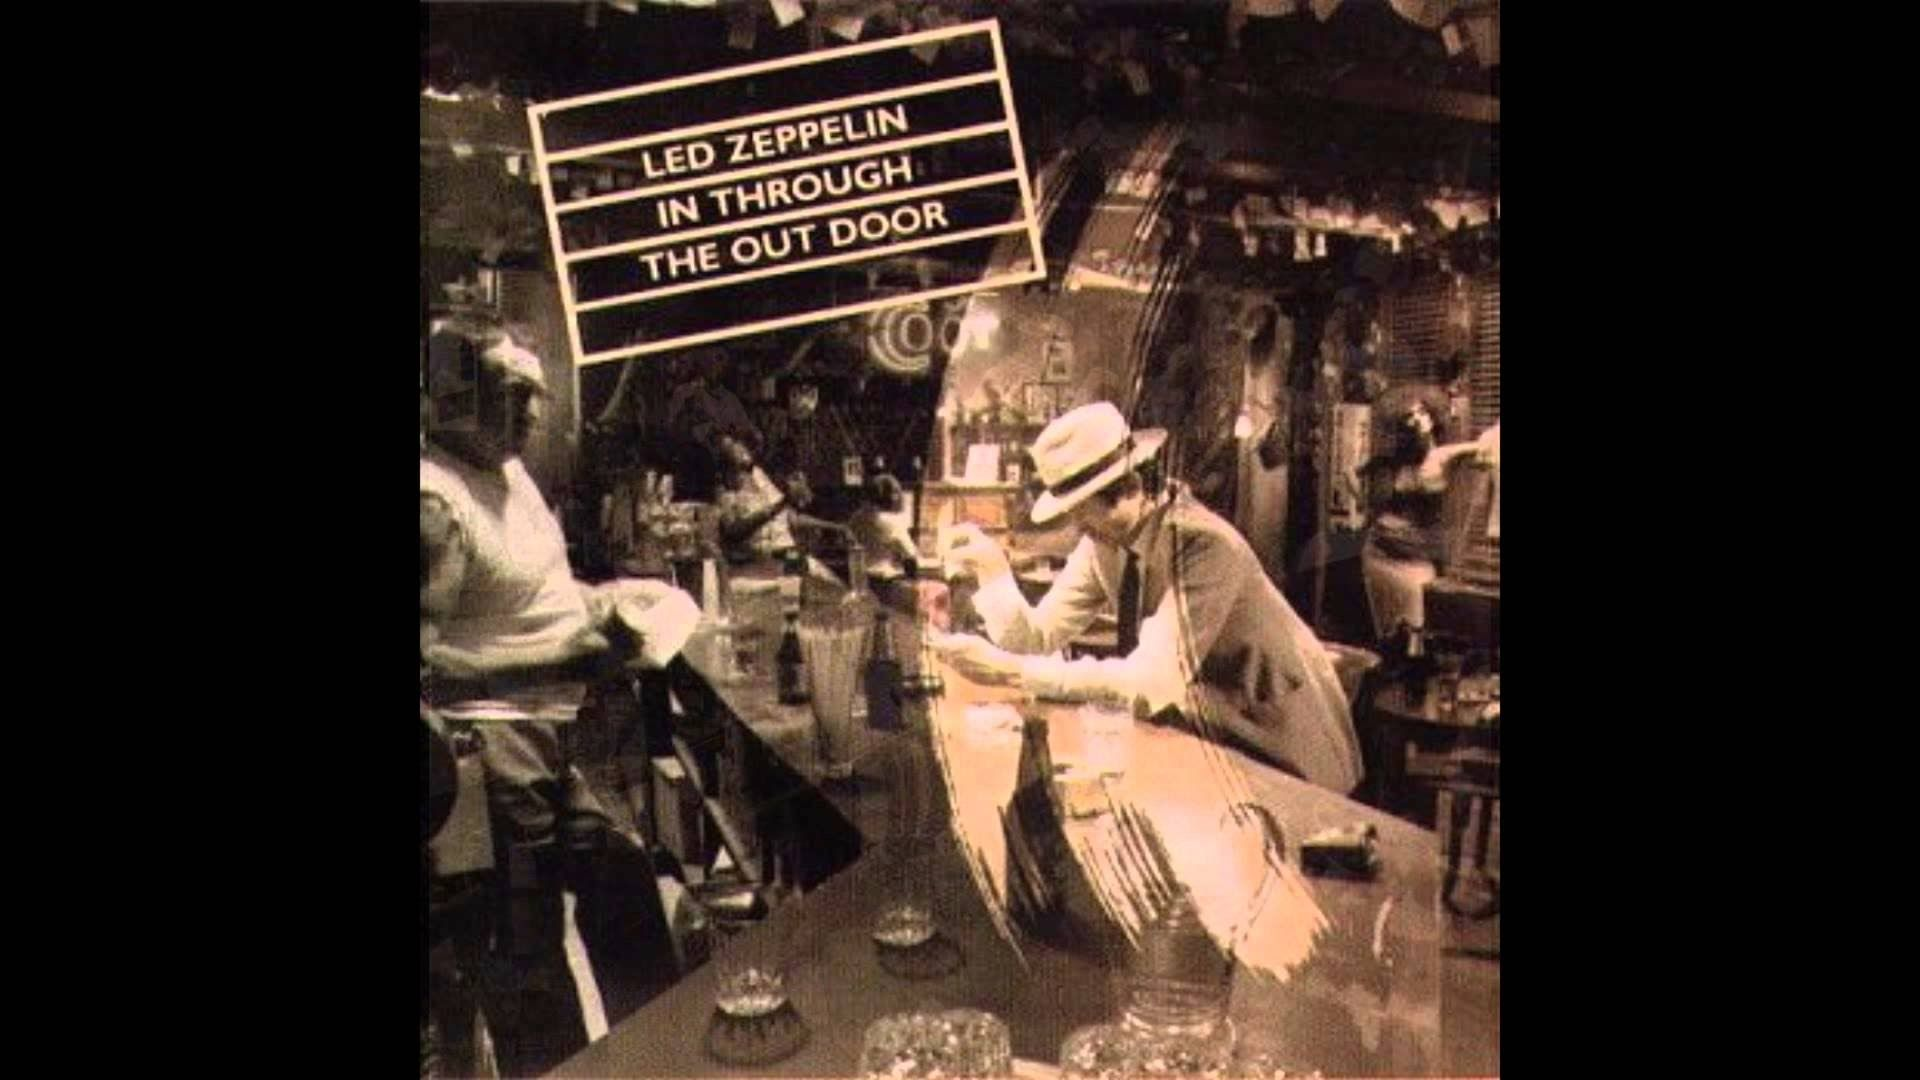 Led Zeppelin Album Reviews In Through The Out Door Led Zeppelin Albums Led Zeppelin Zeppelin